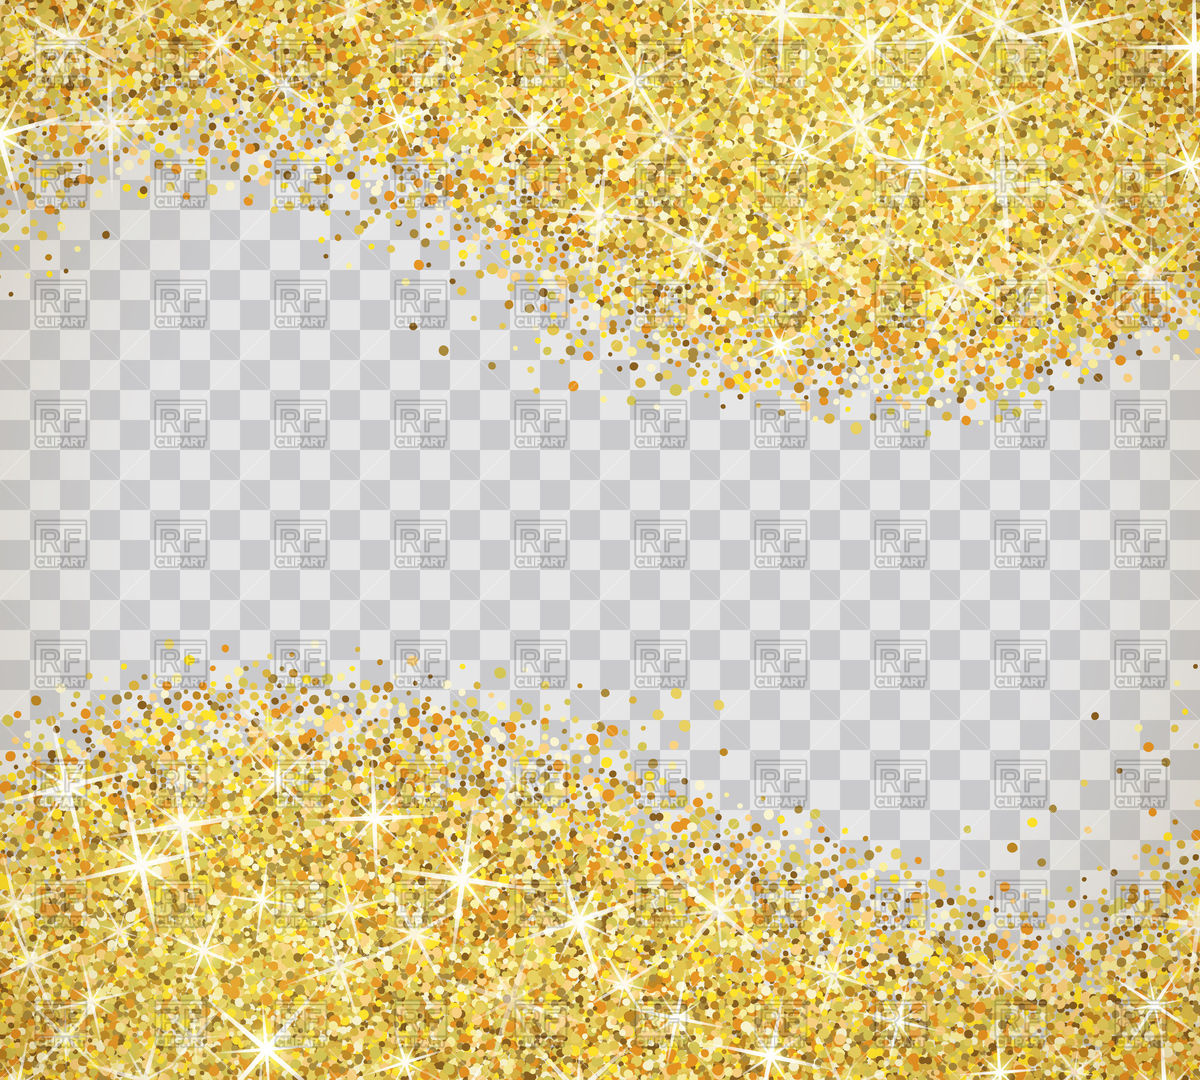 Gold glitter on transparent background Vector Image #112238.